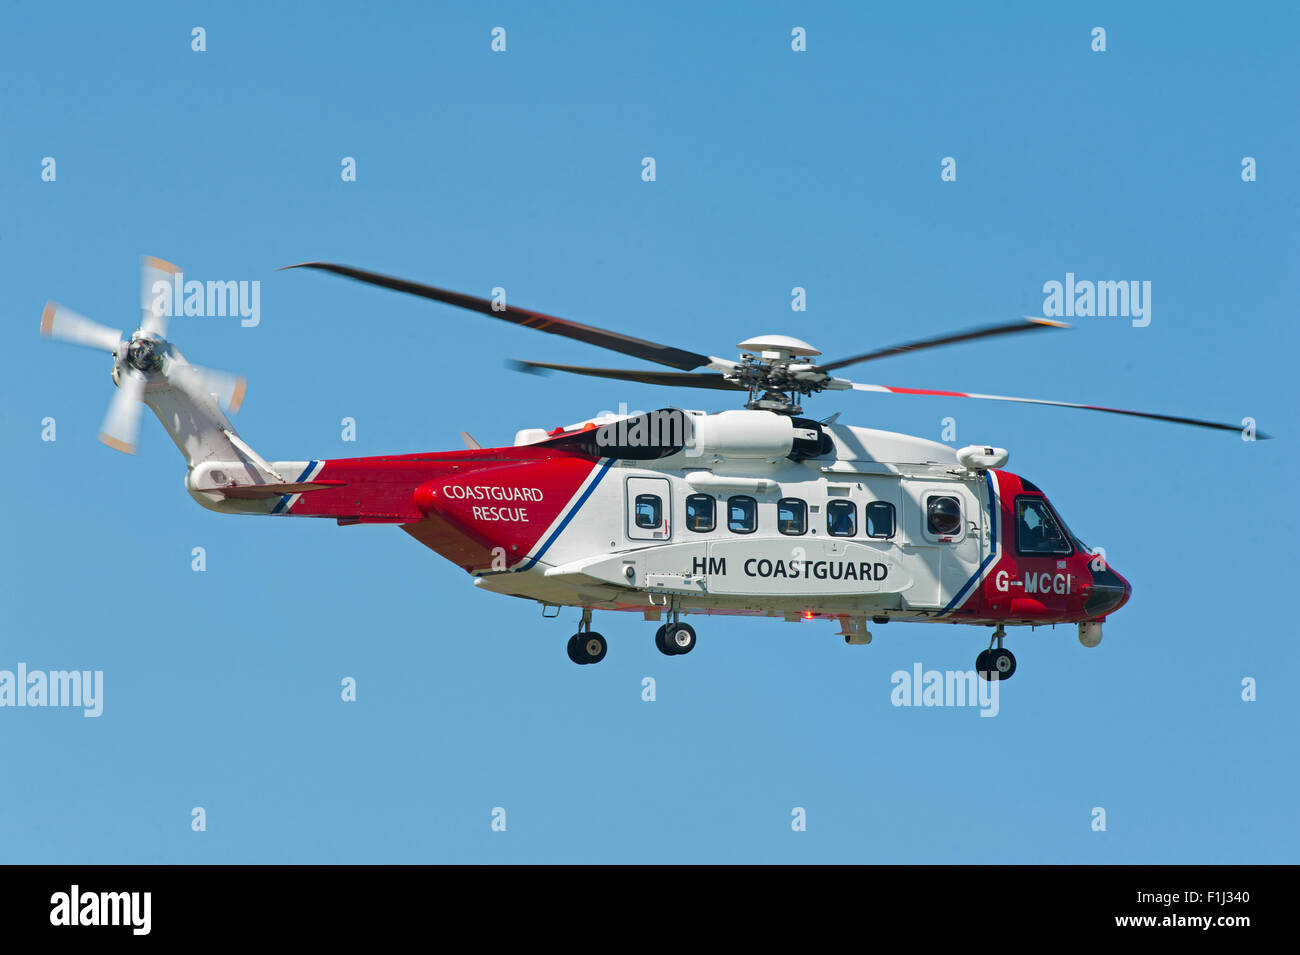 Sikorsky S-92A Coastguard SAR Helicopter (G-MCGI) based at Inverness.  SCO 10,074. - Stock Image